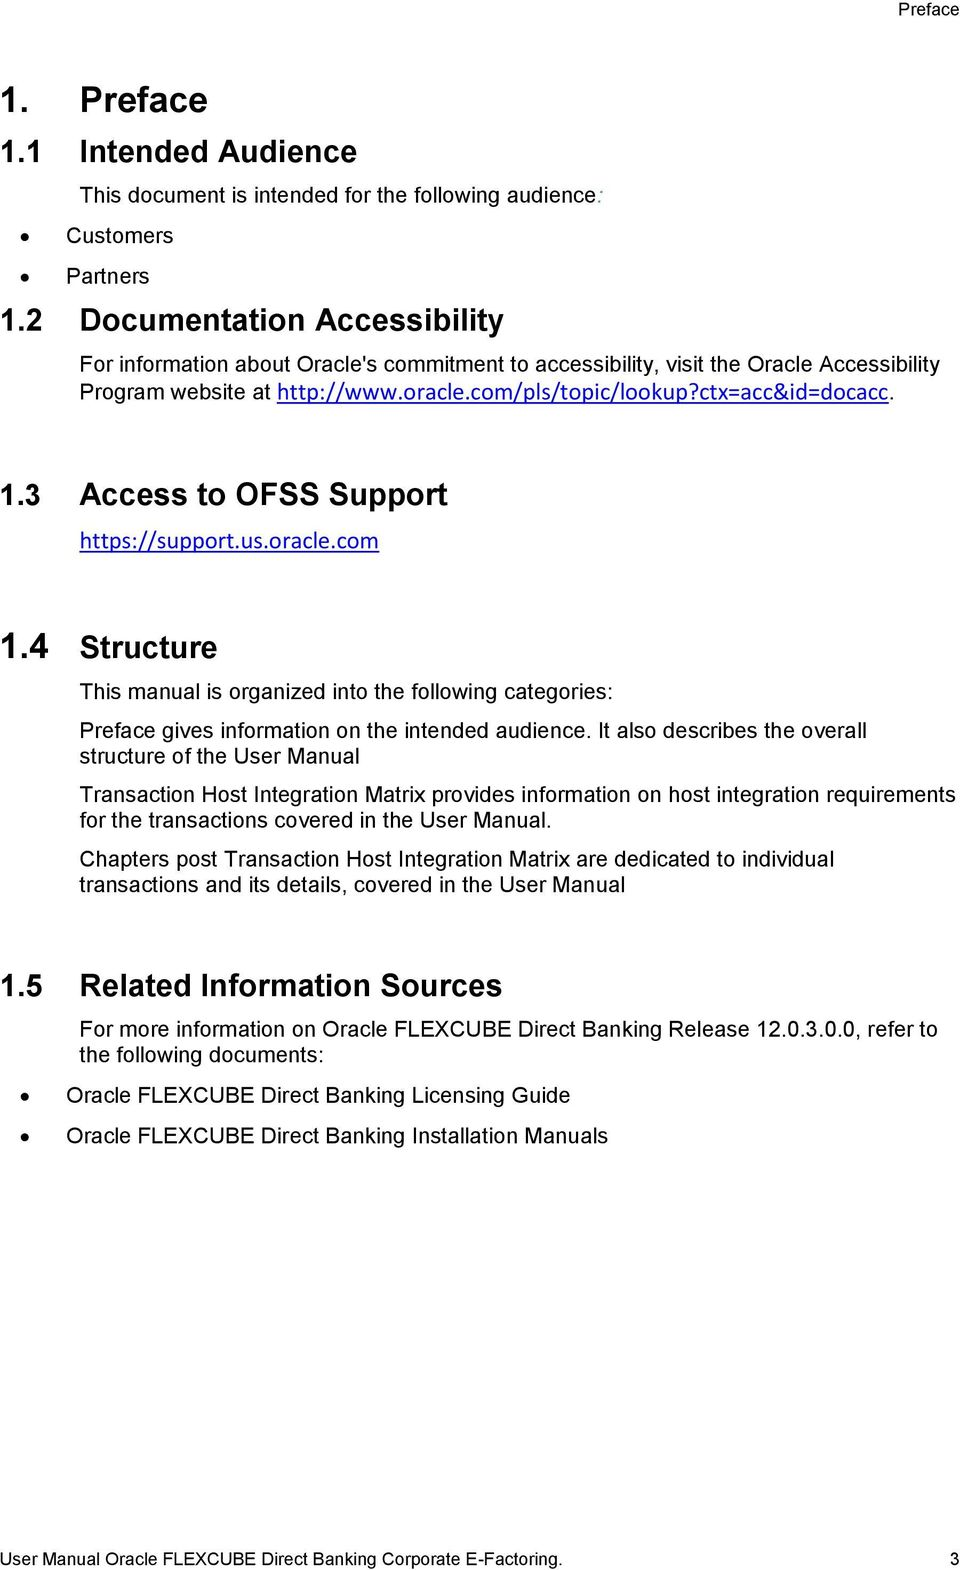 3 Access to OFSS Support https://support.us.oracle.com 1.4 Structure This manual is organized into the following categories: Preface gives information on the intended audience.